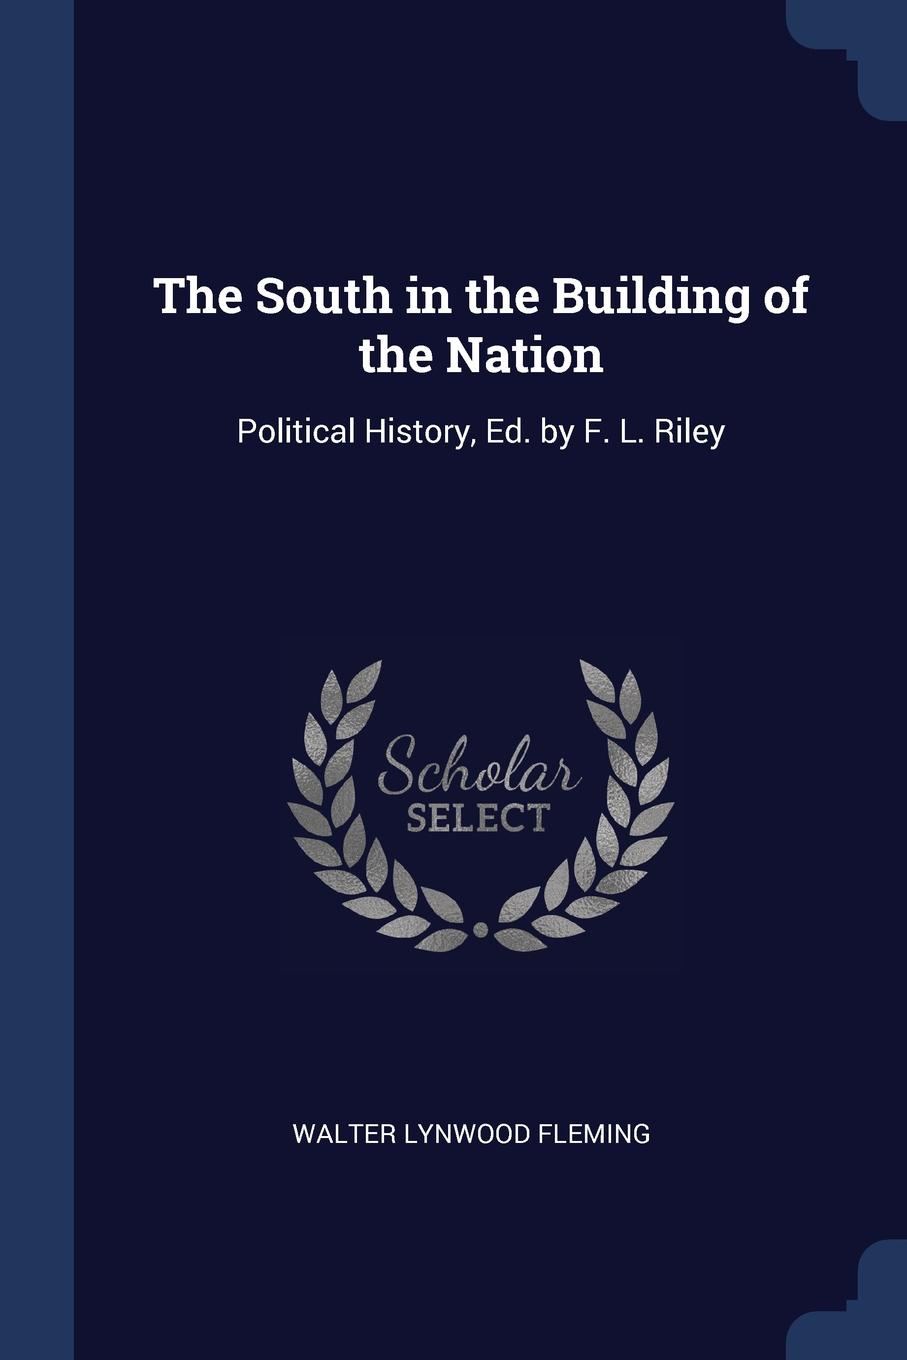 Walter Lynwood Fleming The South in the Building of Nation. Political History, Ed. by F. L. Riley